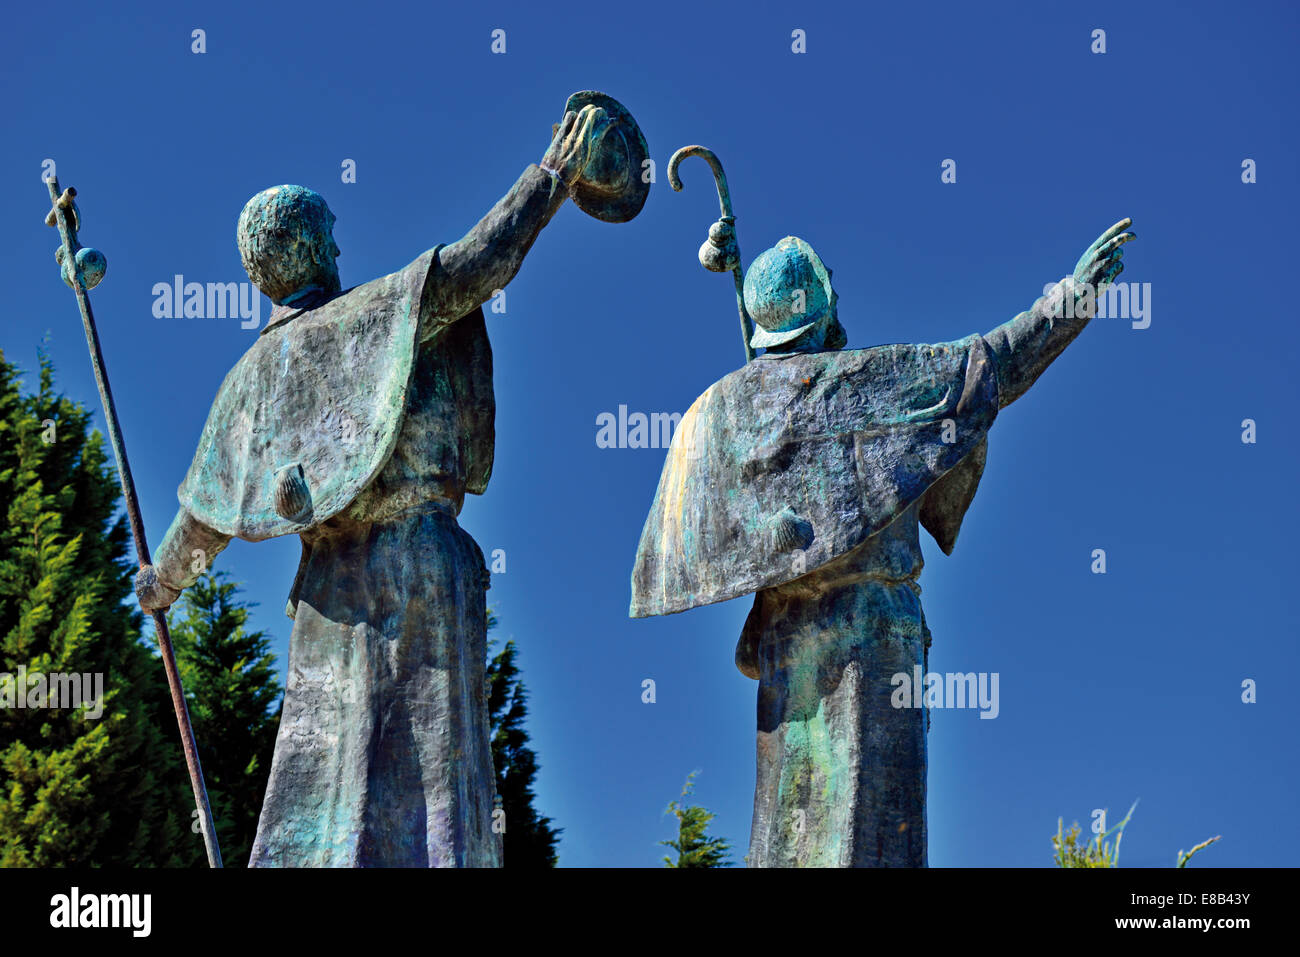 Spain, Galicia: Pilgrim´s monument at Monte do Gozo - Stock Image